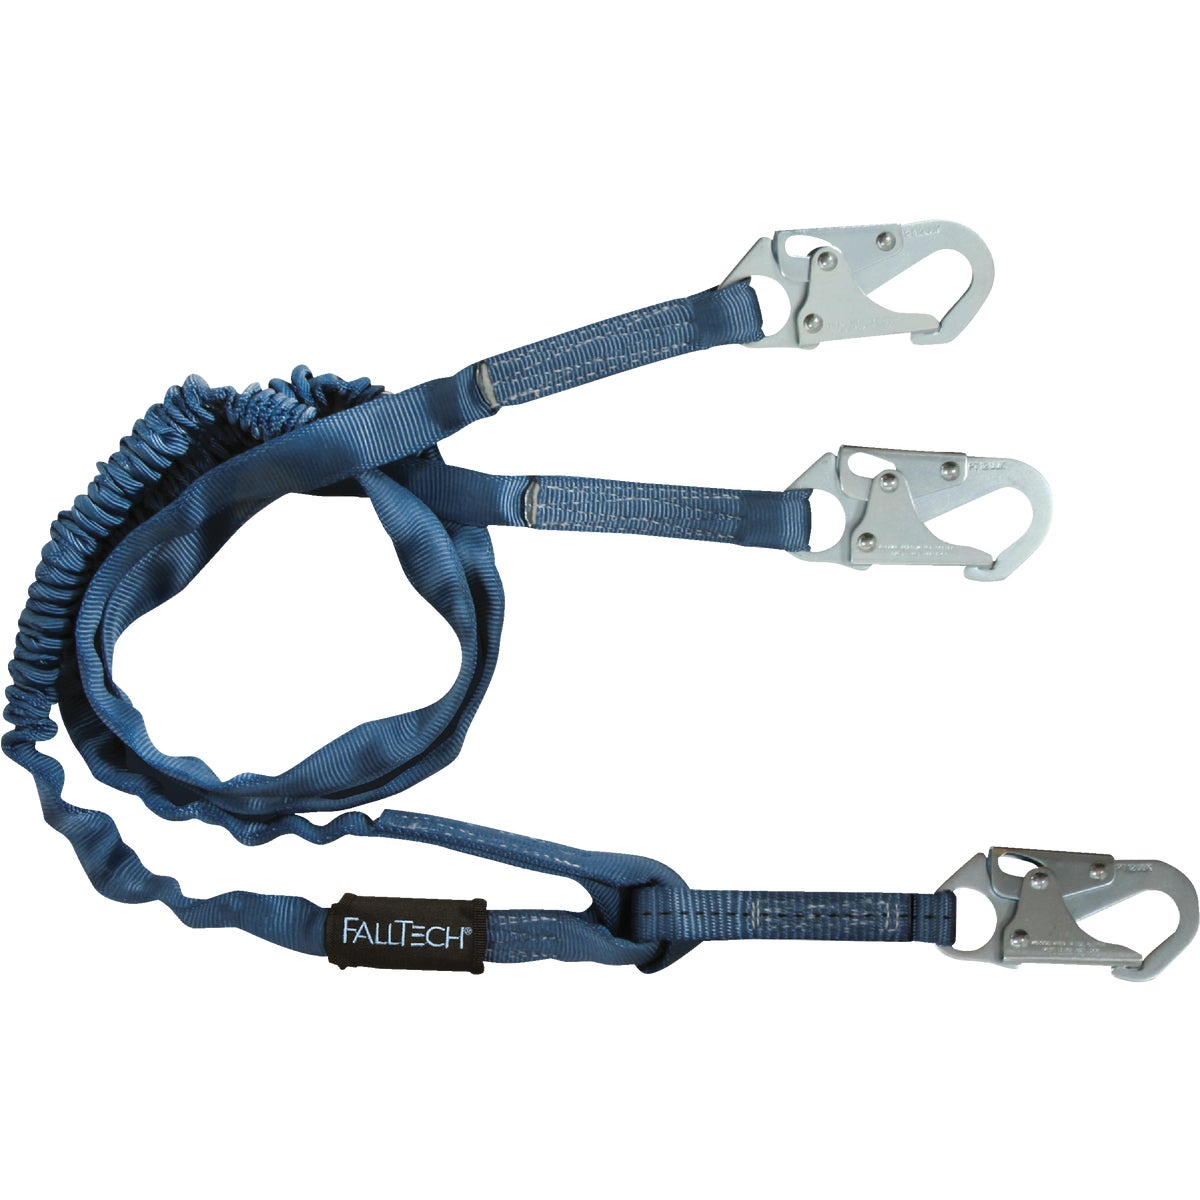 Y-LEG LANYARD - 8259Y by Fall Tech